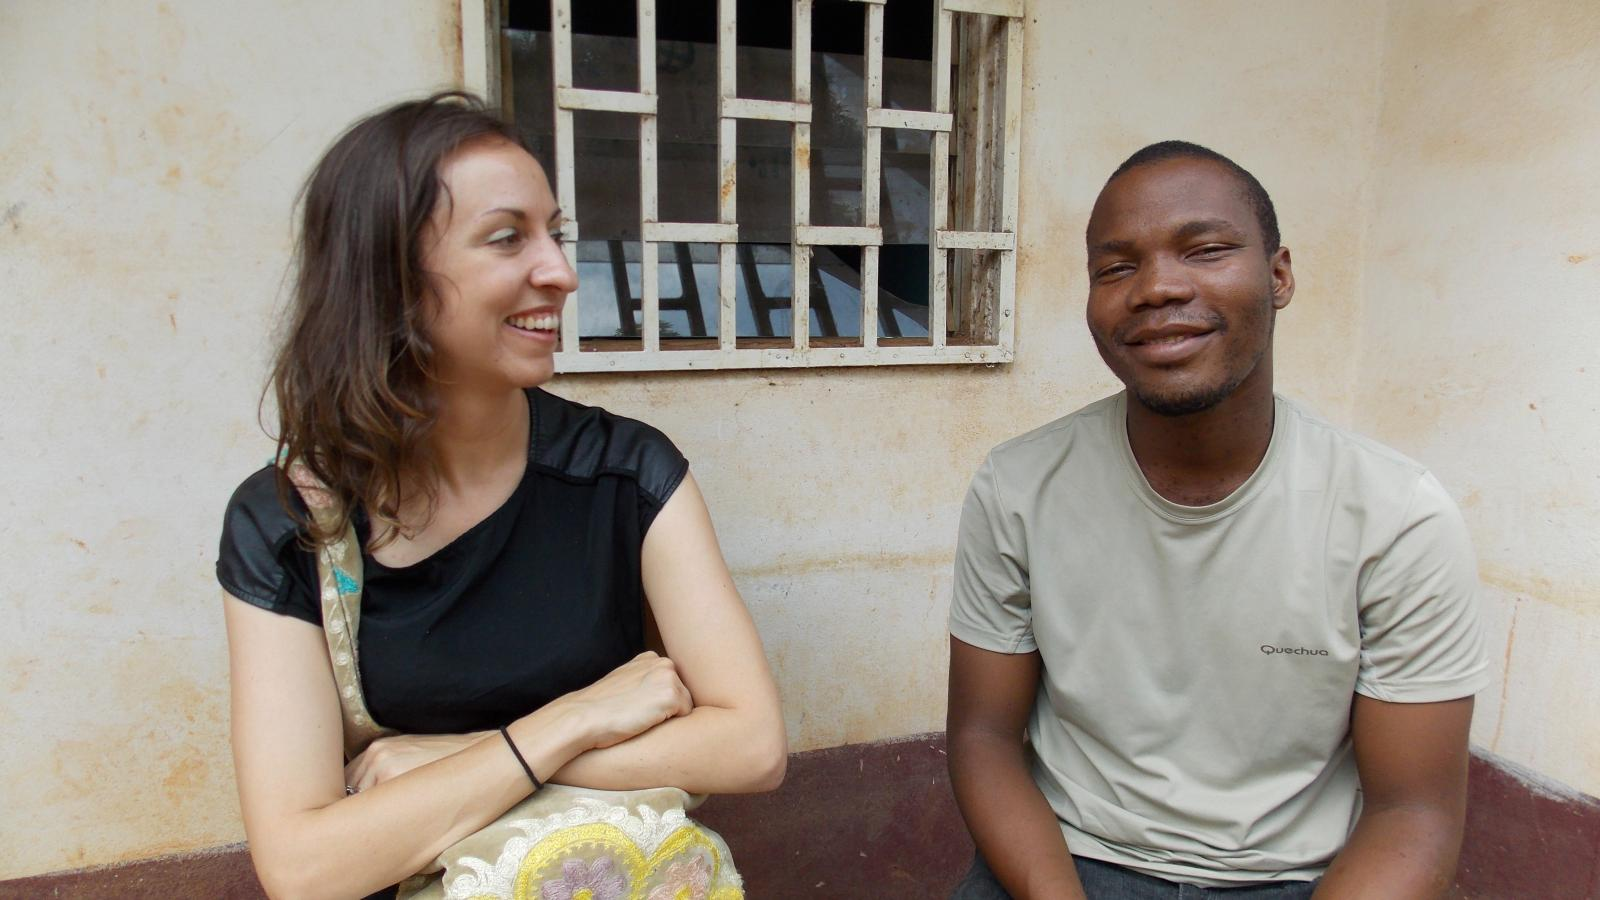 Medical anthropology research in Cameroon